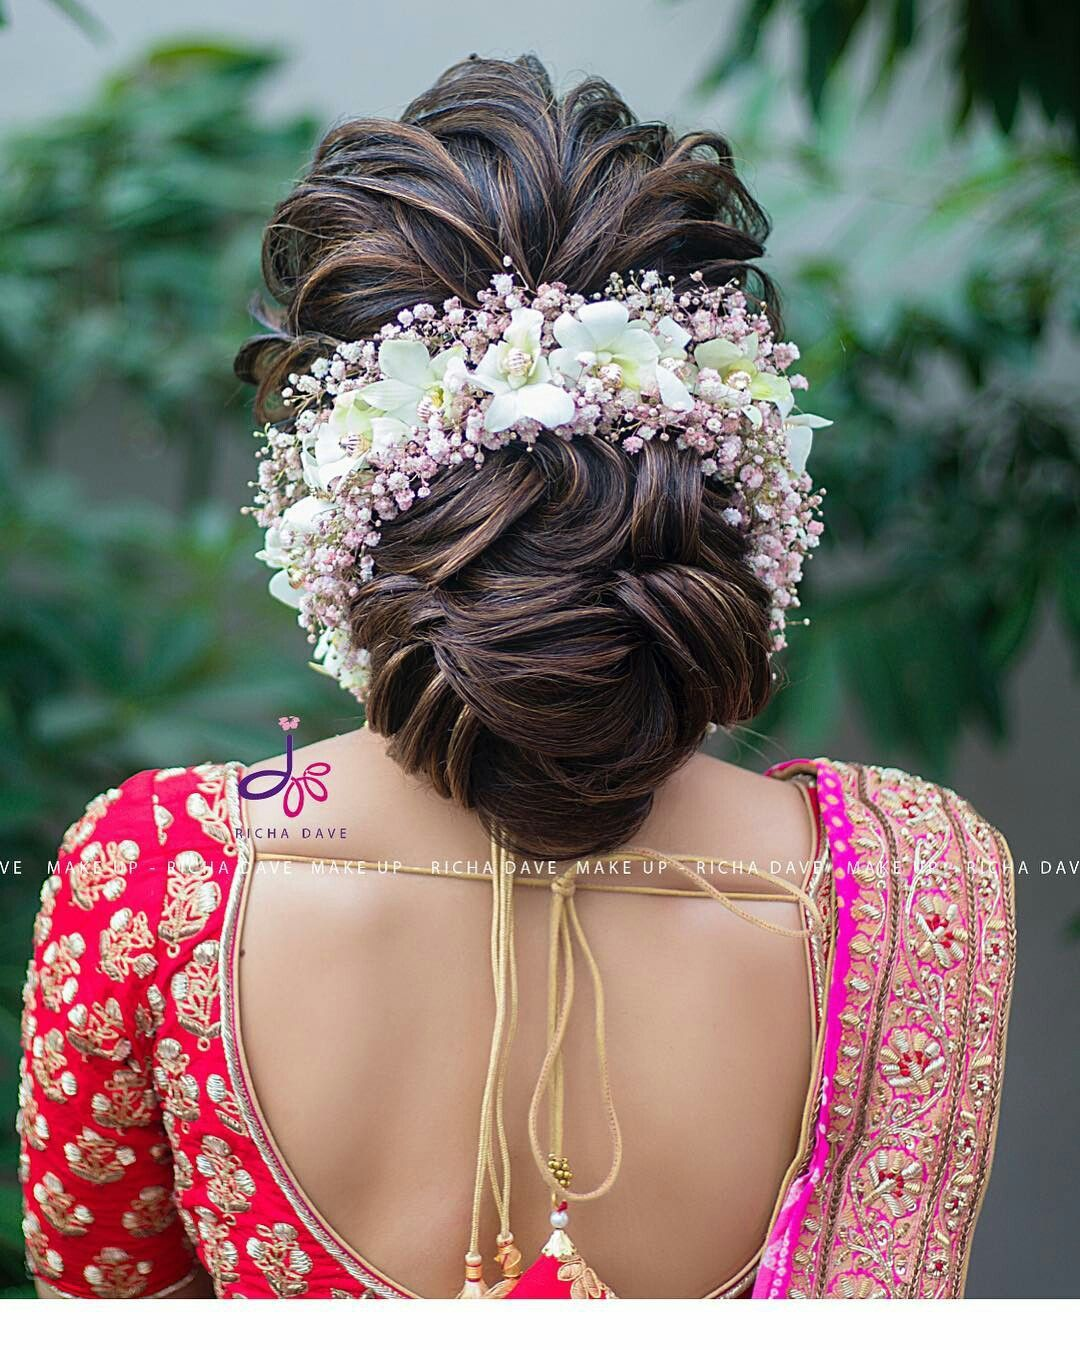 Braided Bun Hairstyle Hairdo Wedding Braided Bun Hairstyles Bun Hairstyles